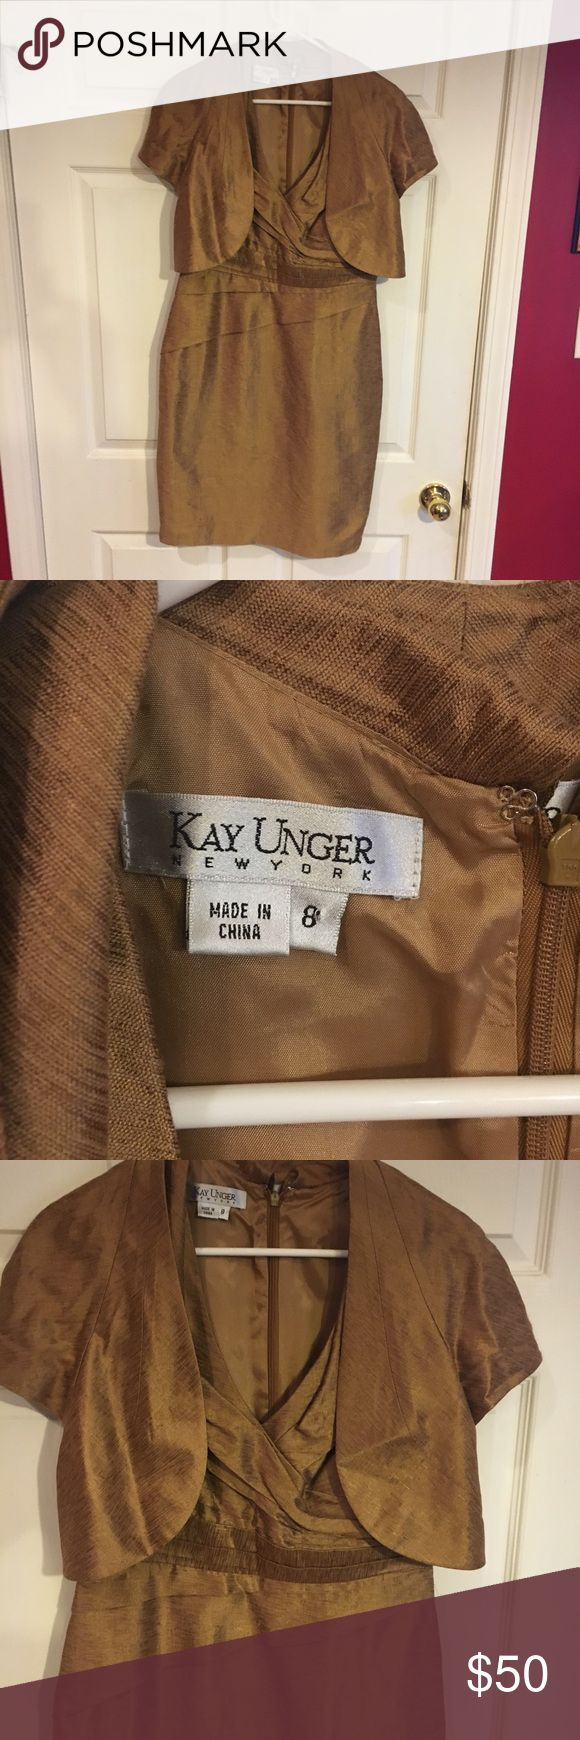 Kay Unger Dress with Jacket, Size 8 Very nice dress, comes with jacket.  Sleeveless, Gold Kay Unger Dresses